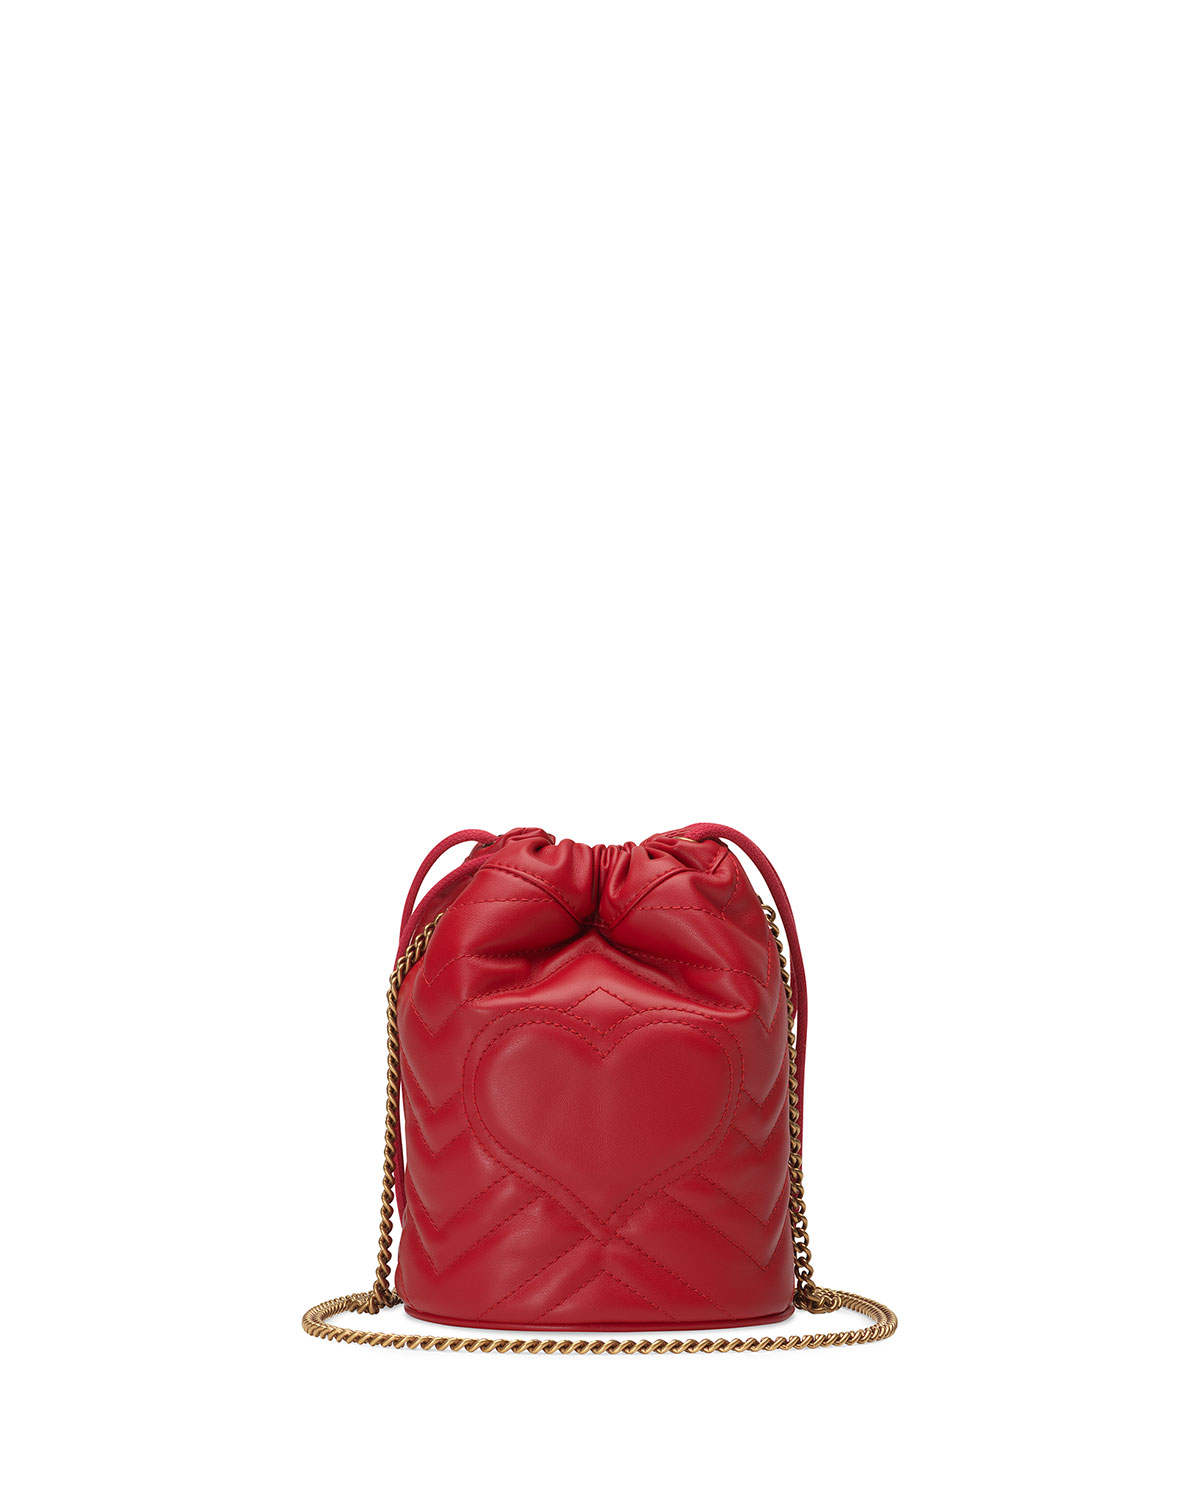 040428a96f GG Marmont 2.0 Mini Leather Bucket Bag